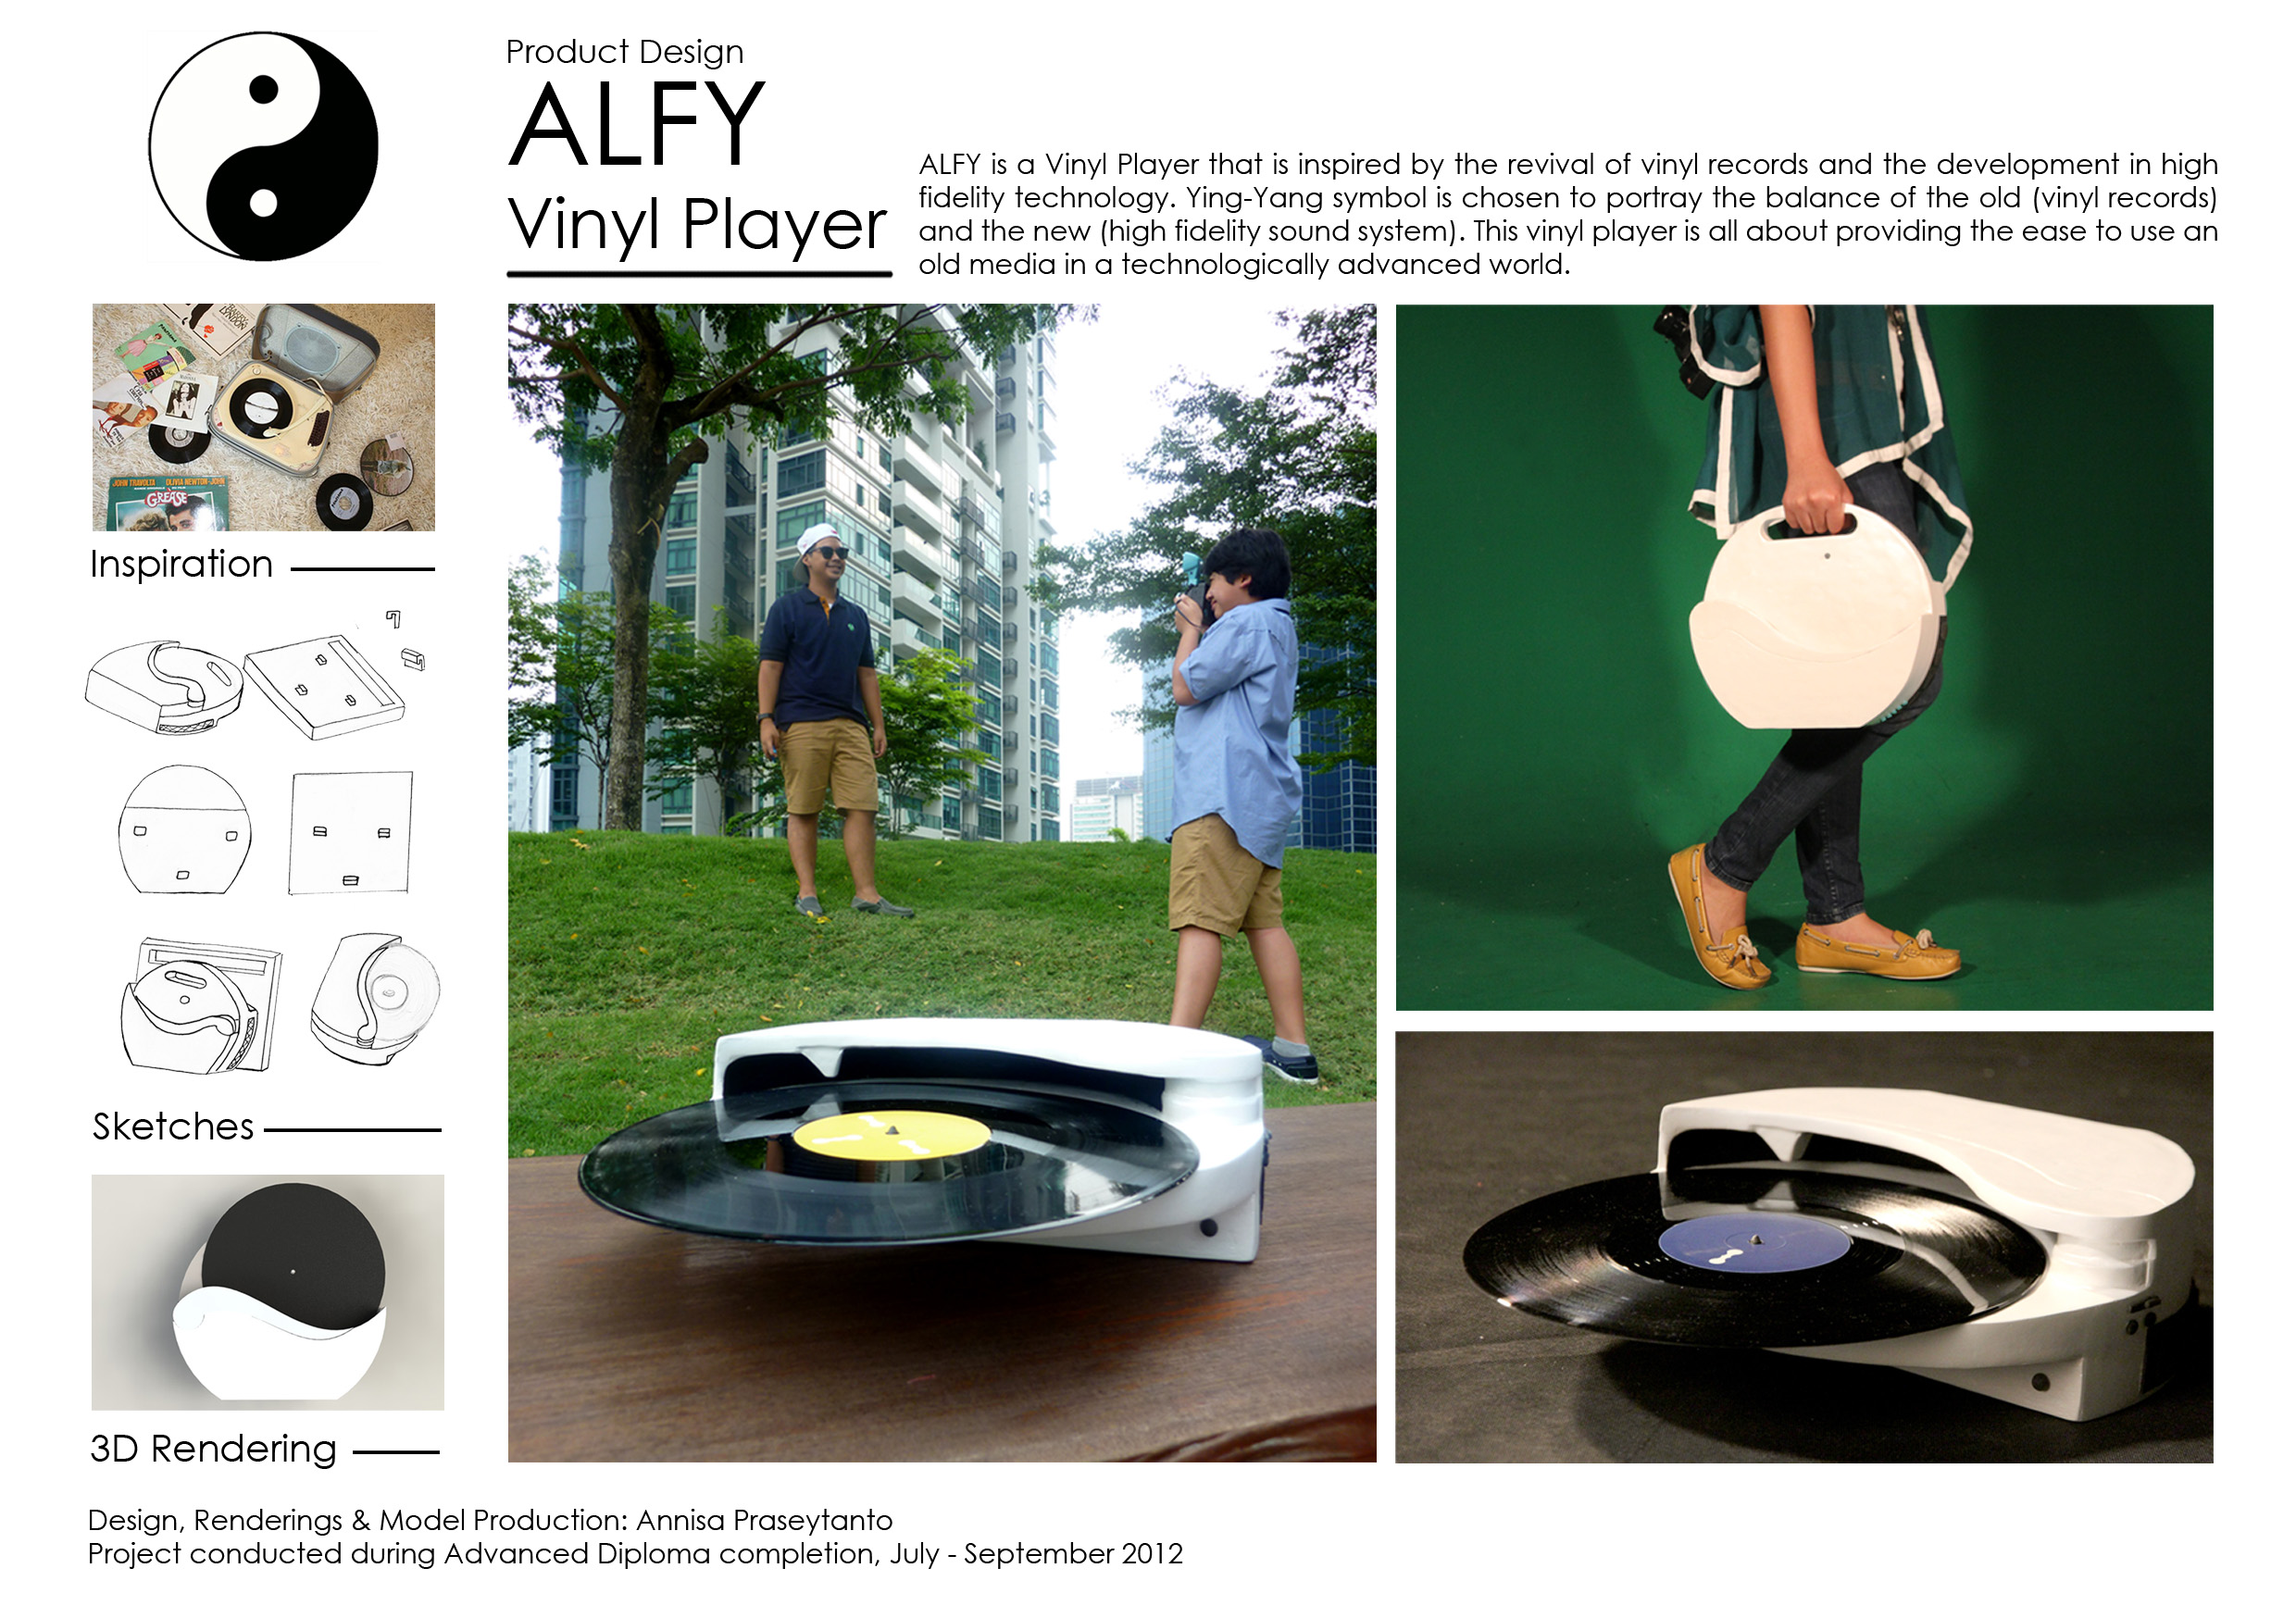 Product Design: ALFY Vinyl Player